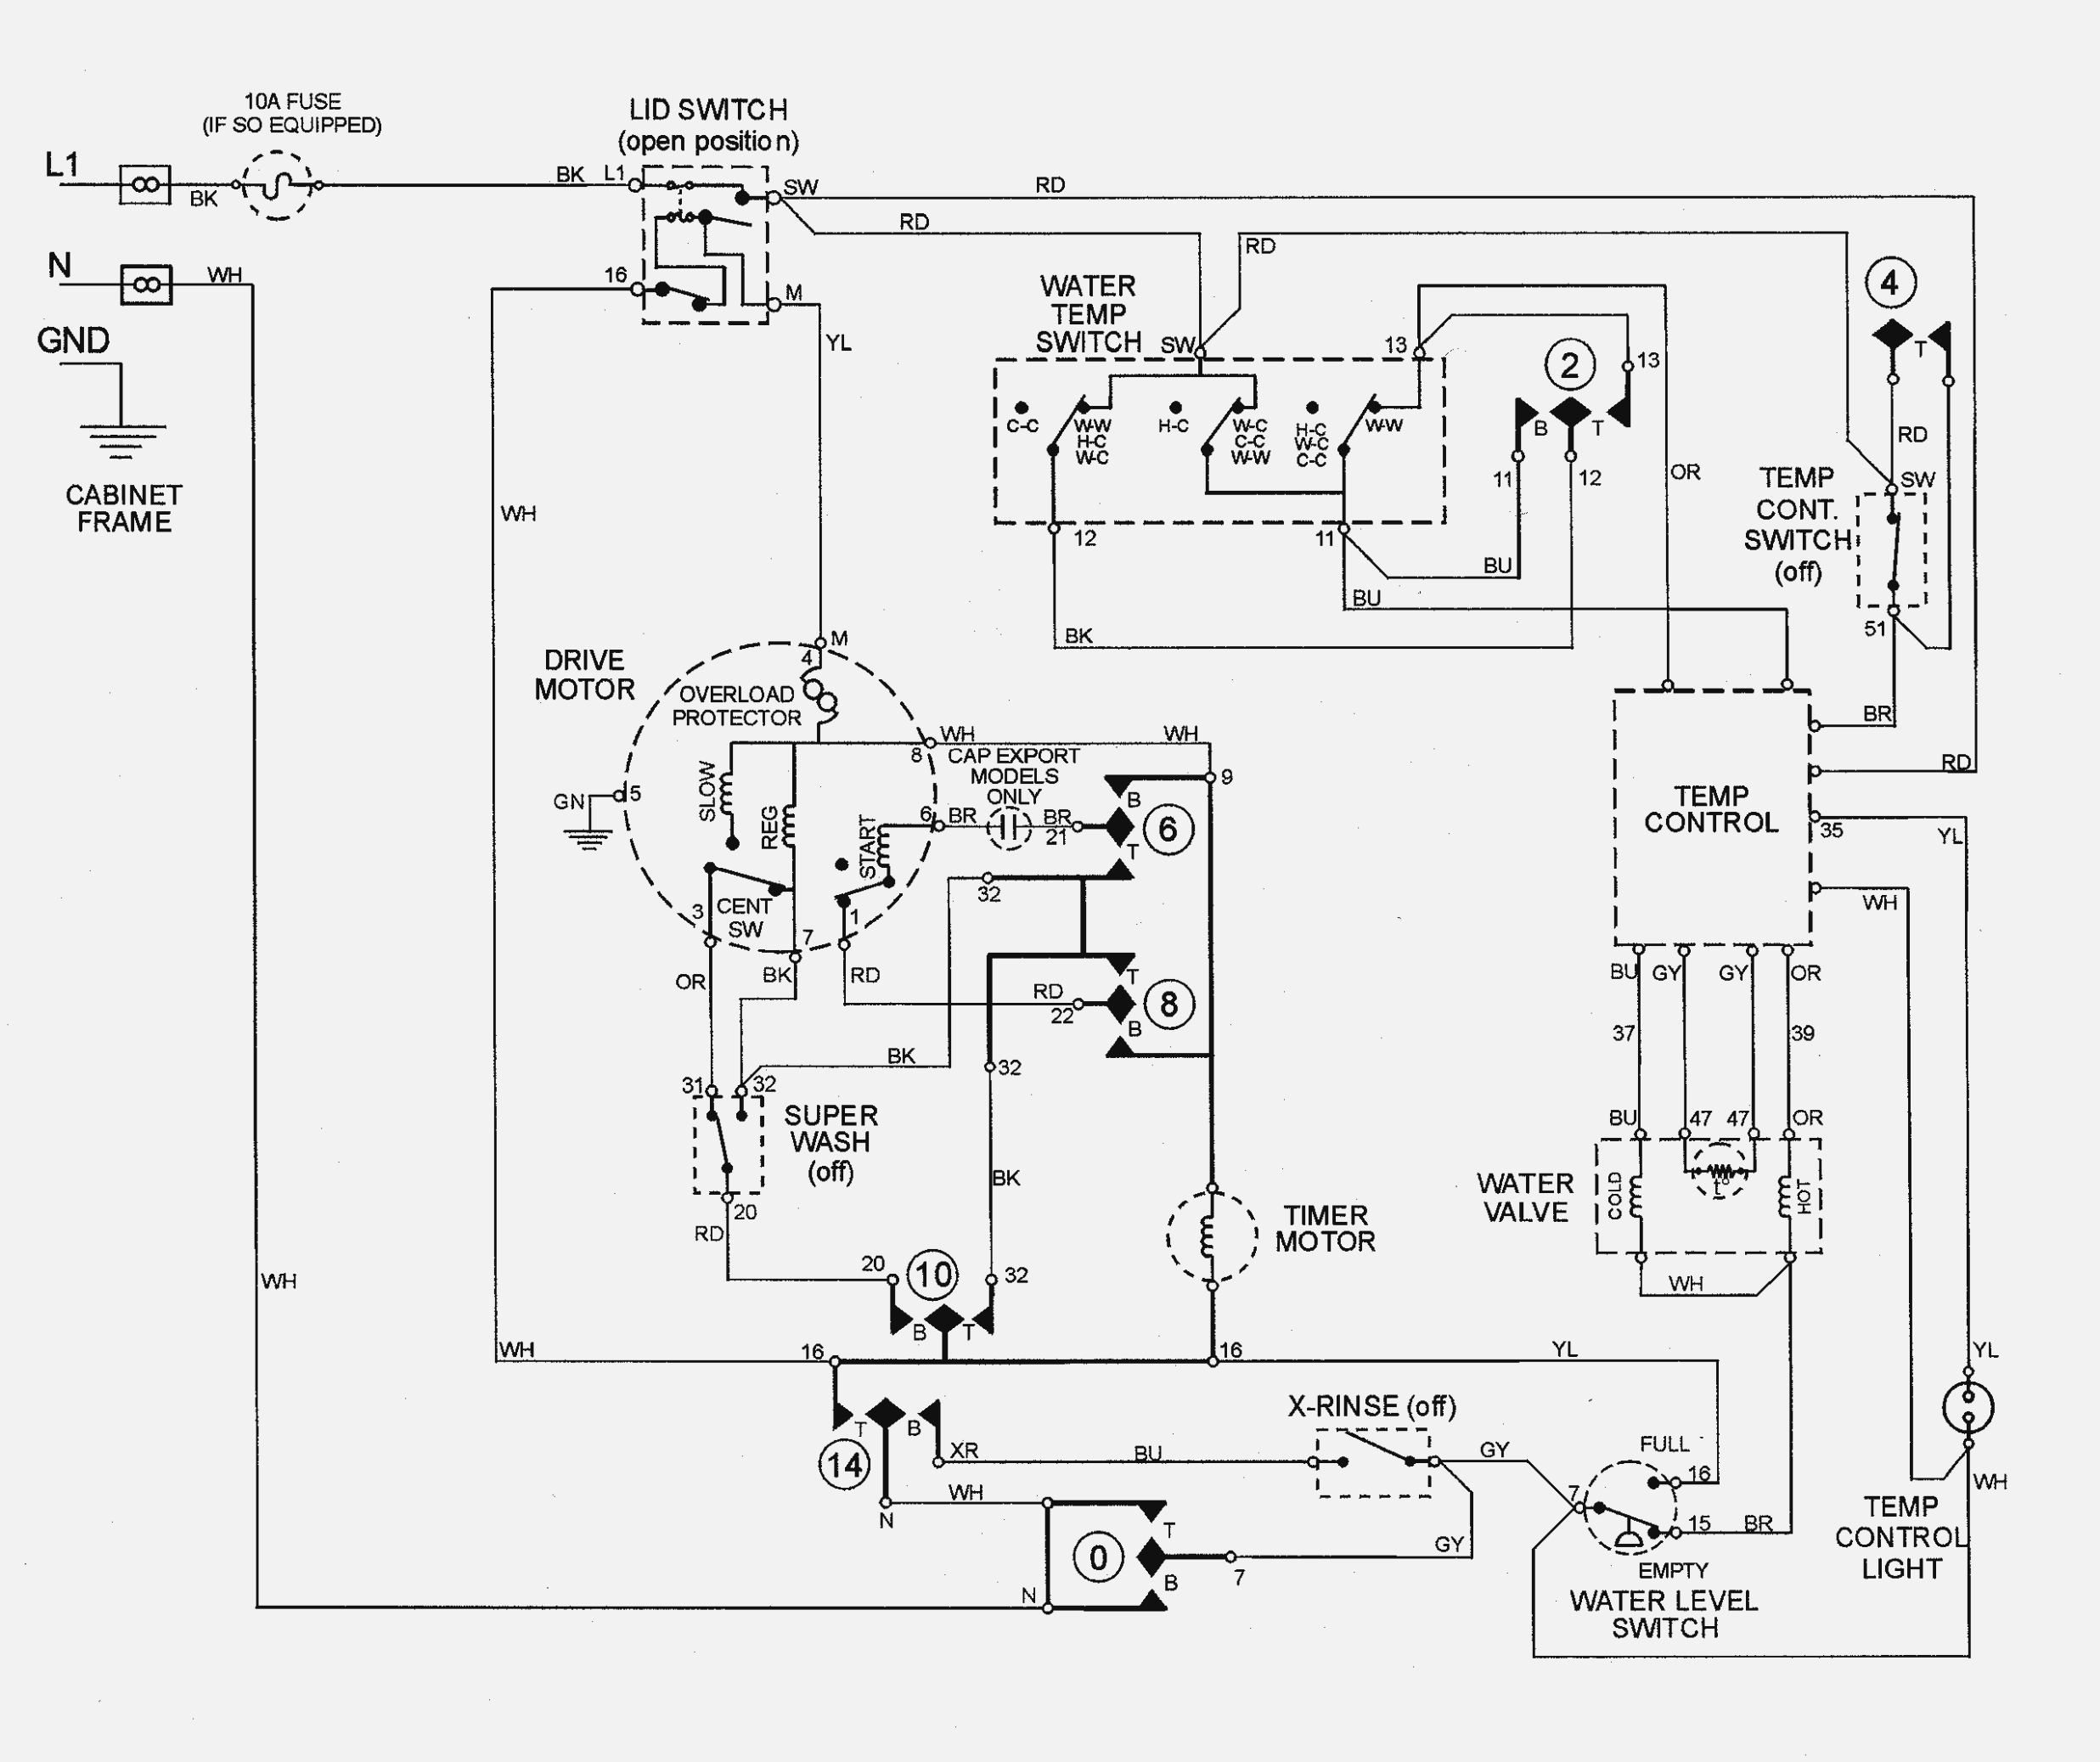 A Wiring Diagram Is A Type Of Schematic That Uses Abstract